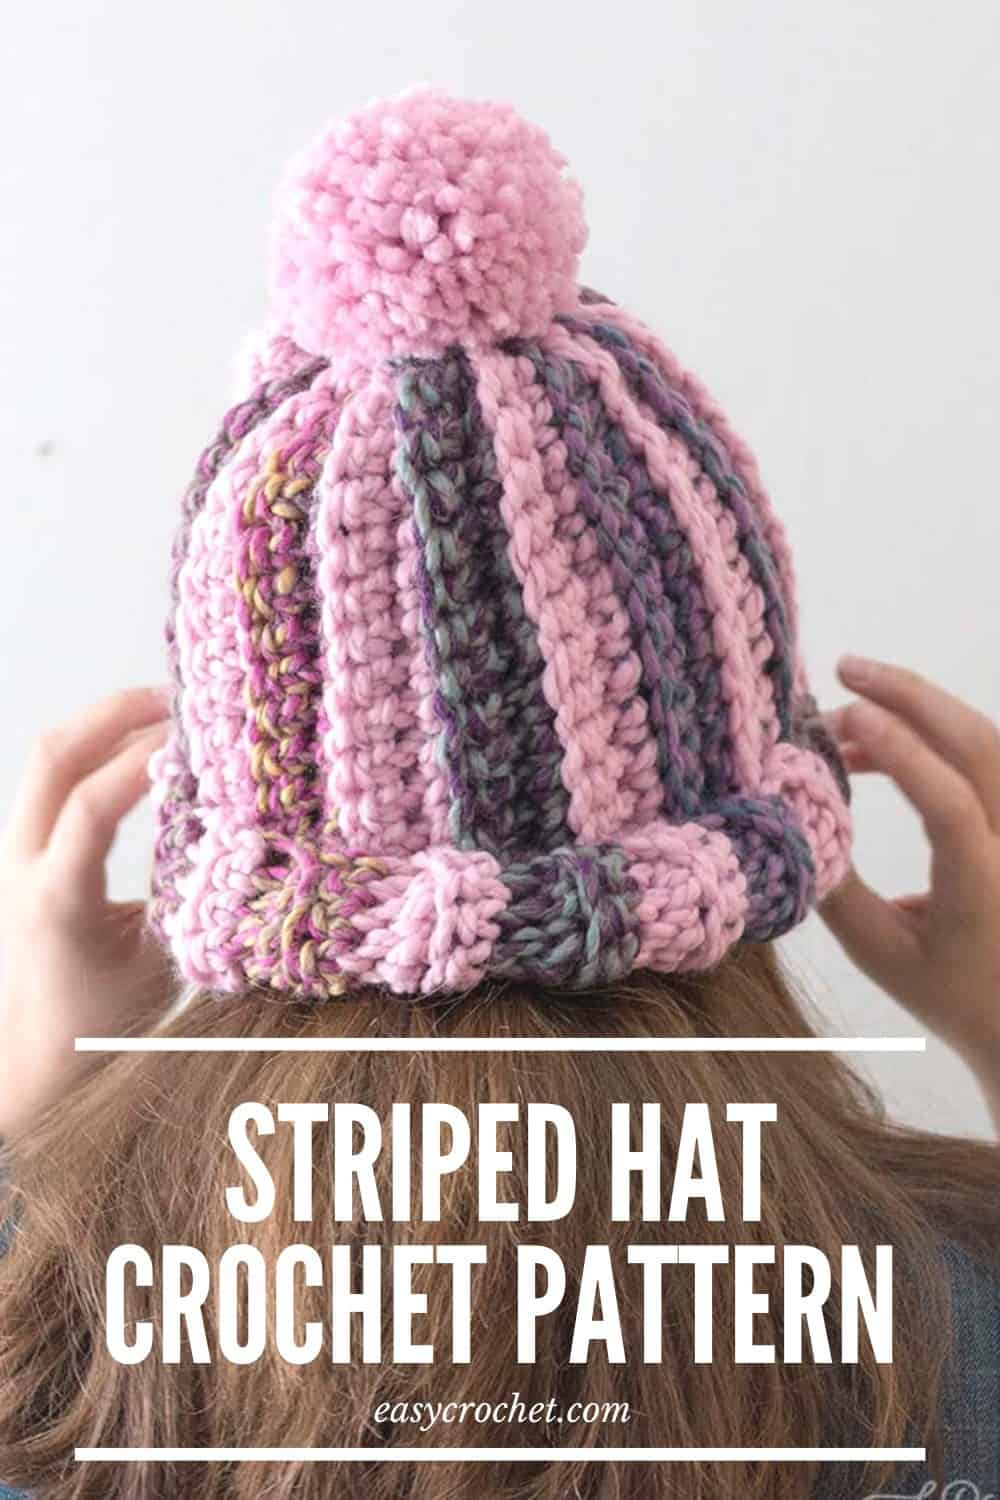 Striped Hat Crochet Pattern by Easy Crochet - Beginner-Friendly Chunky Beanie Pattern via @easycrochetcom